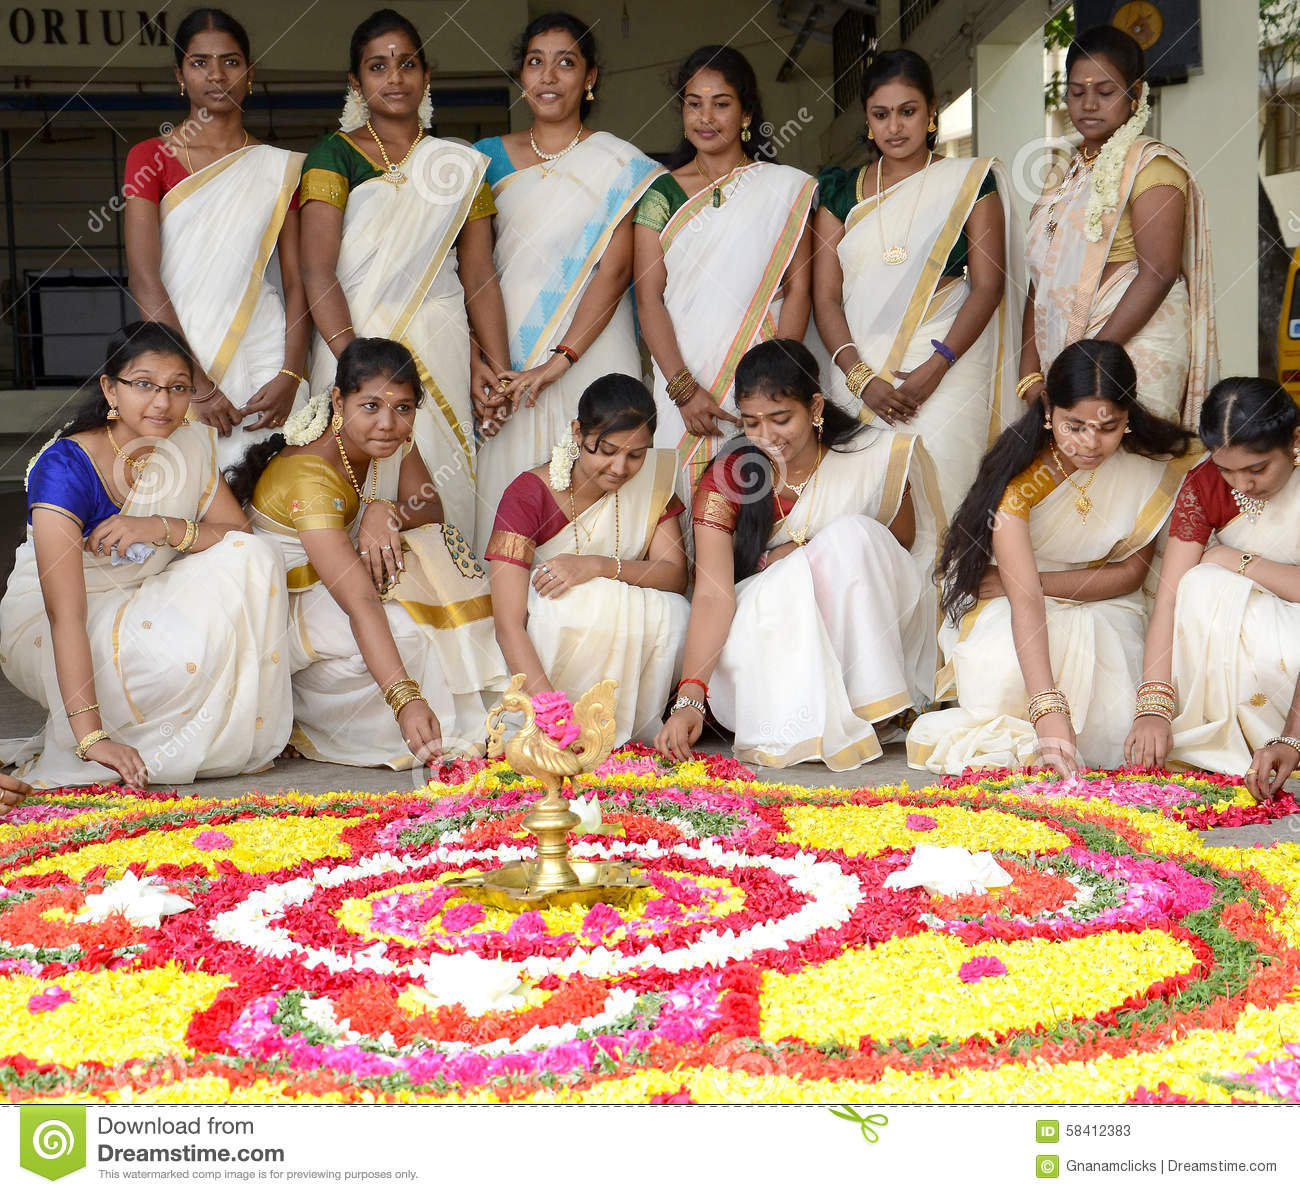 5a8324a4e7730 Beautiful young girls in traditional dress, making rangoli for South Indian  festival, Happy Onam celebration.photo taken on:22nd august 2015